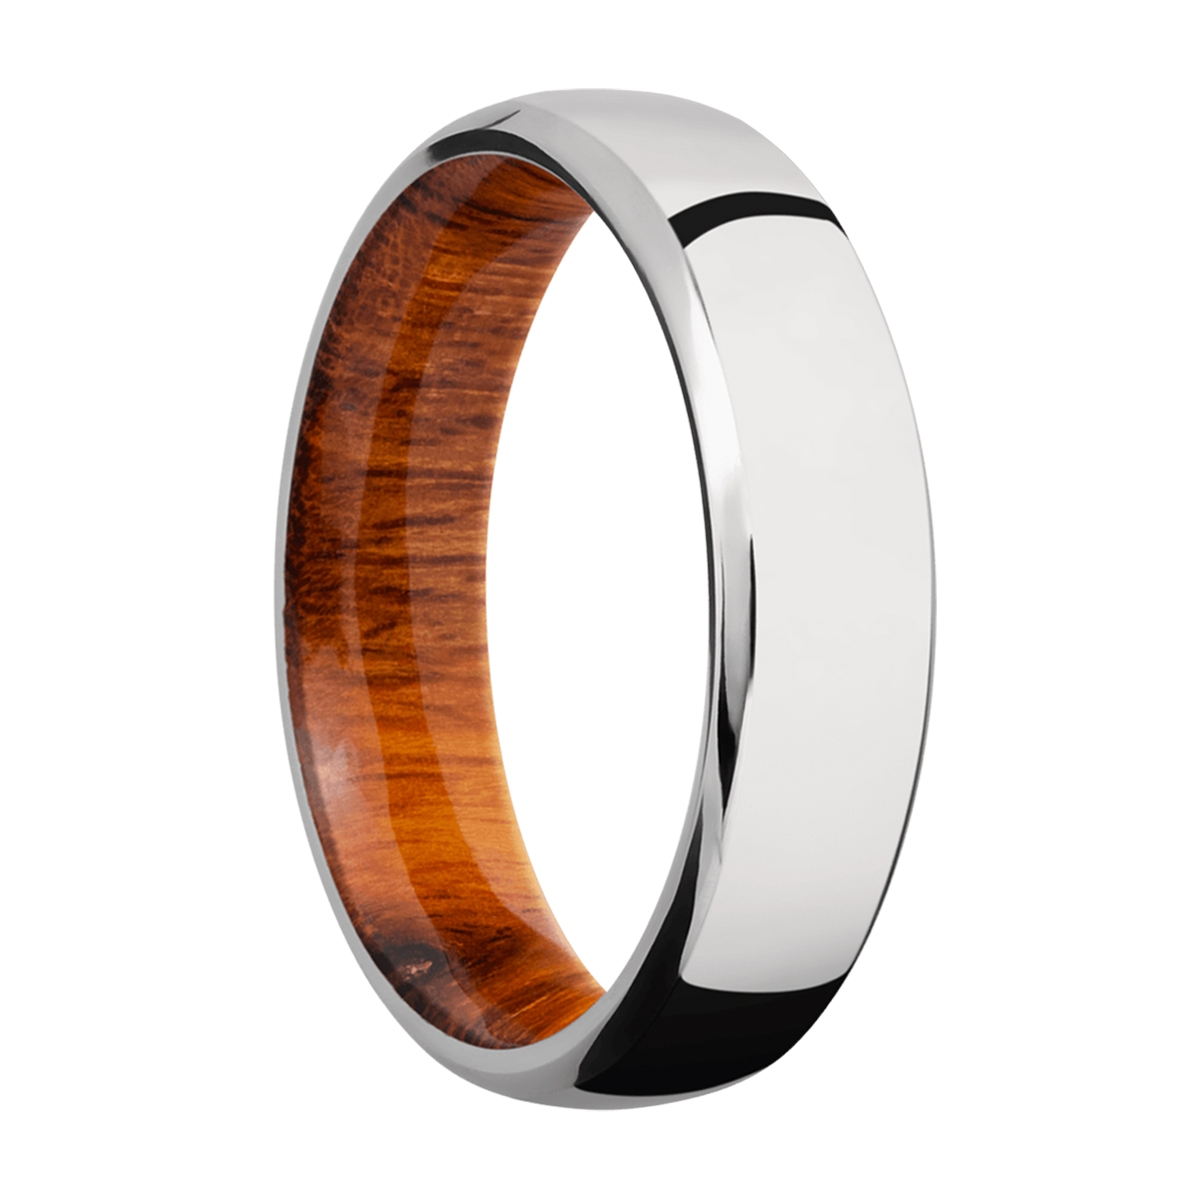 Lashbrook HWSLEEVECC6DB Cobalt Chrome and Hardwood Wedding Ring or Band Alternative View 1